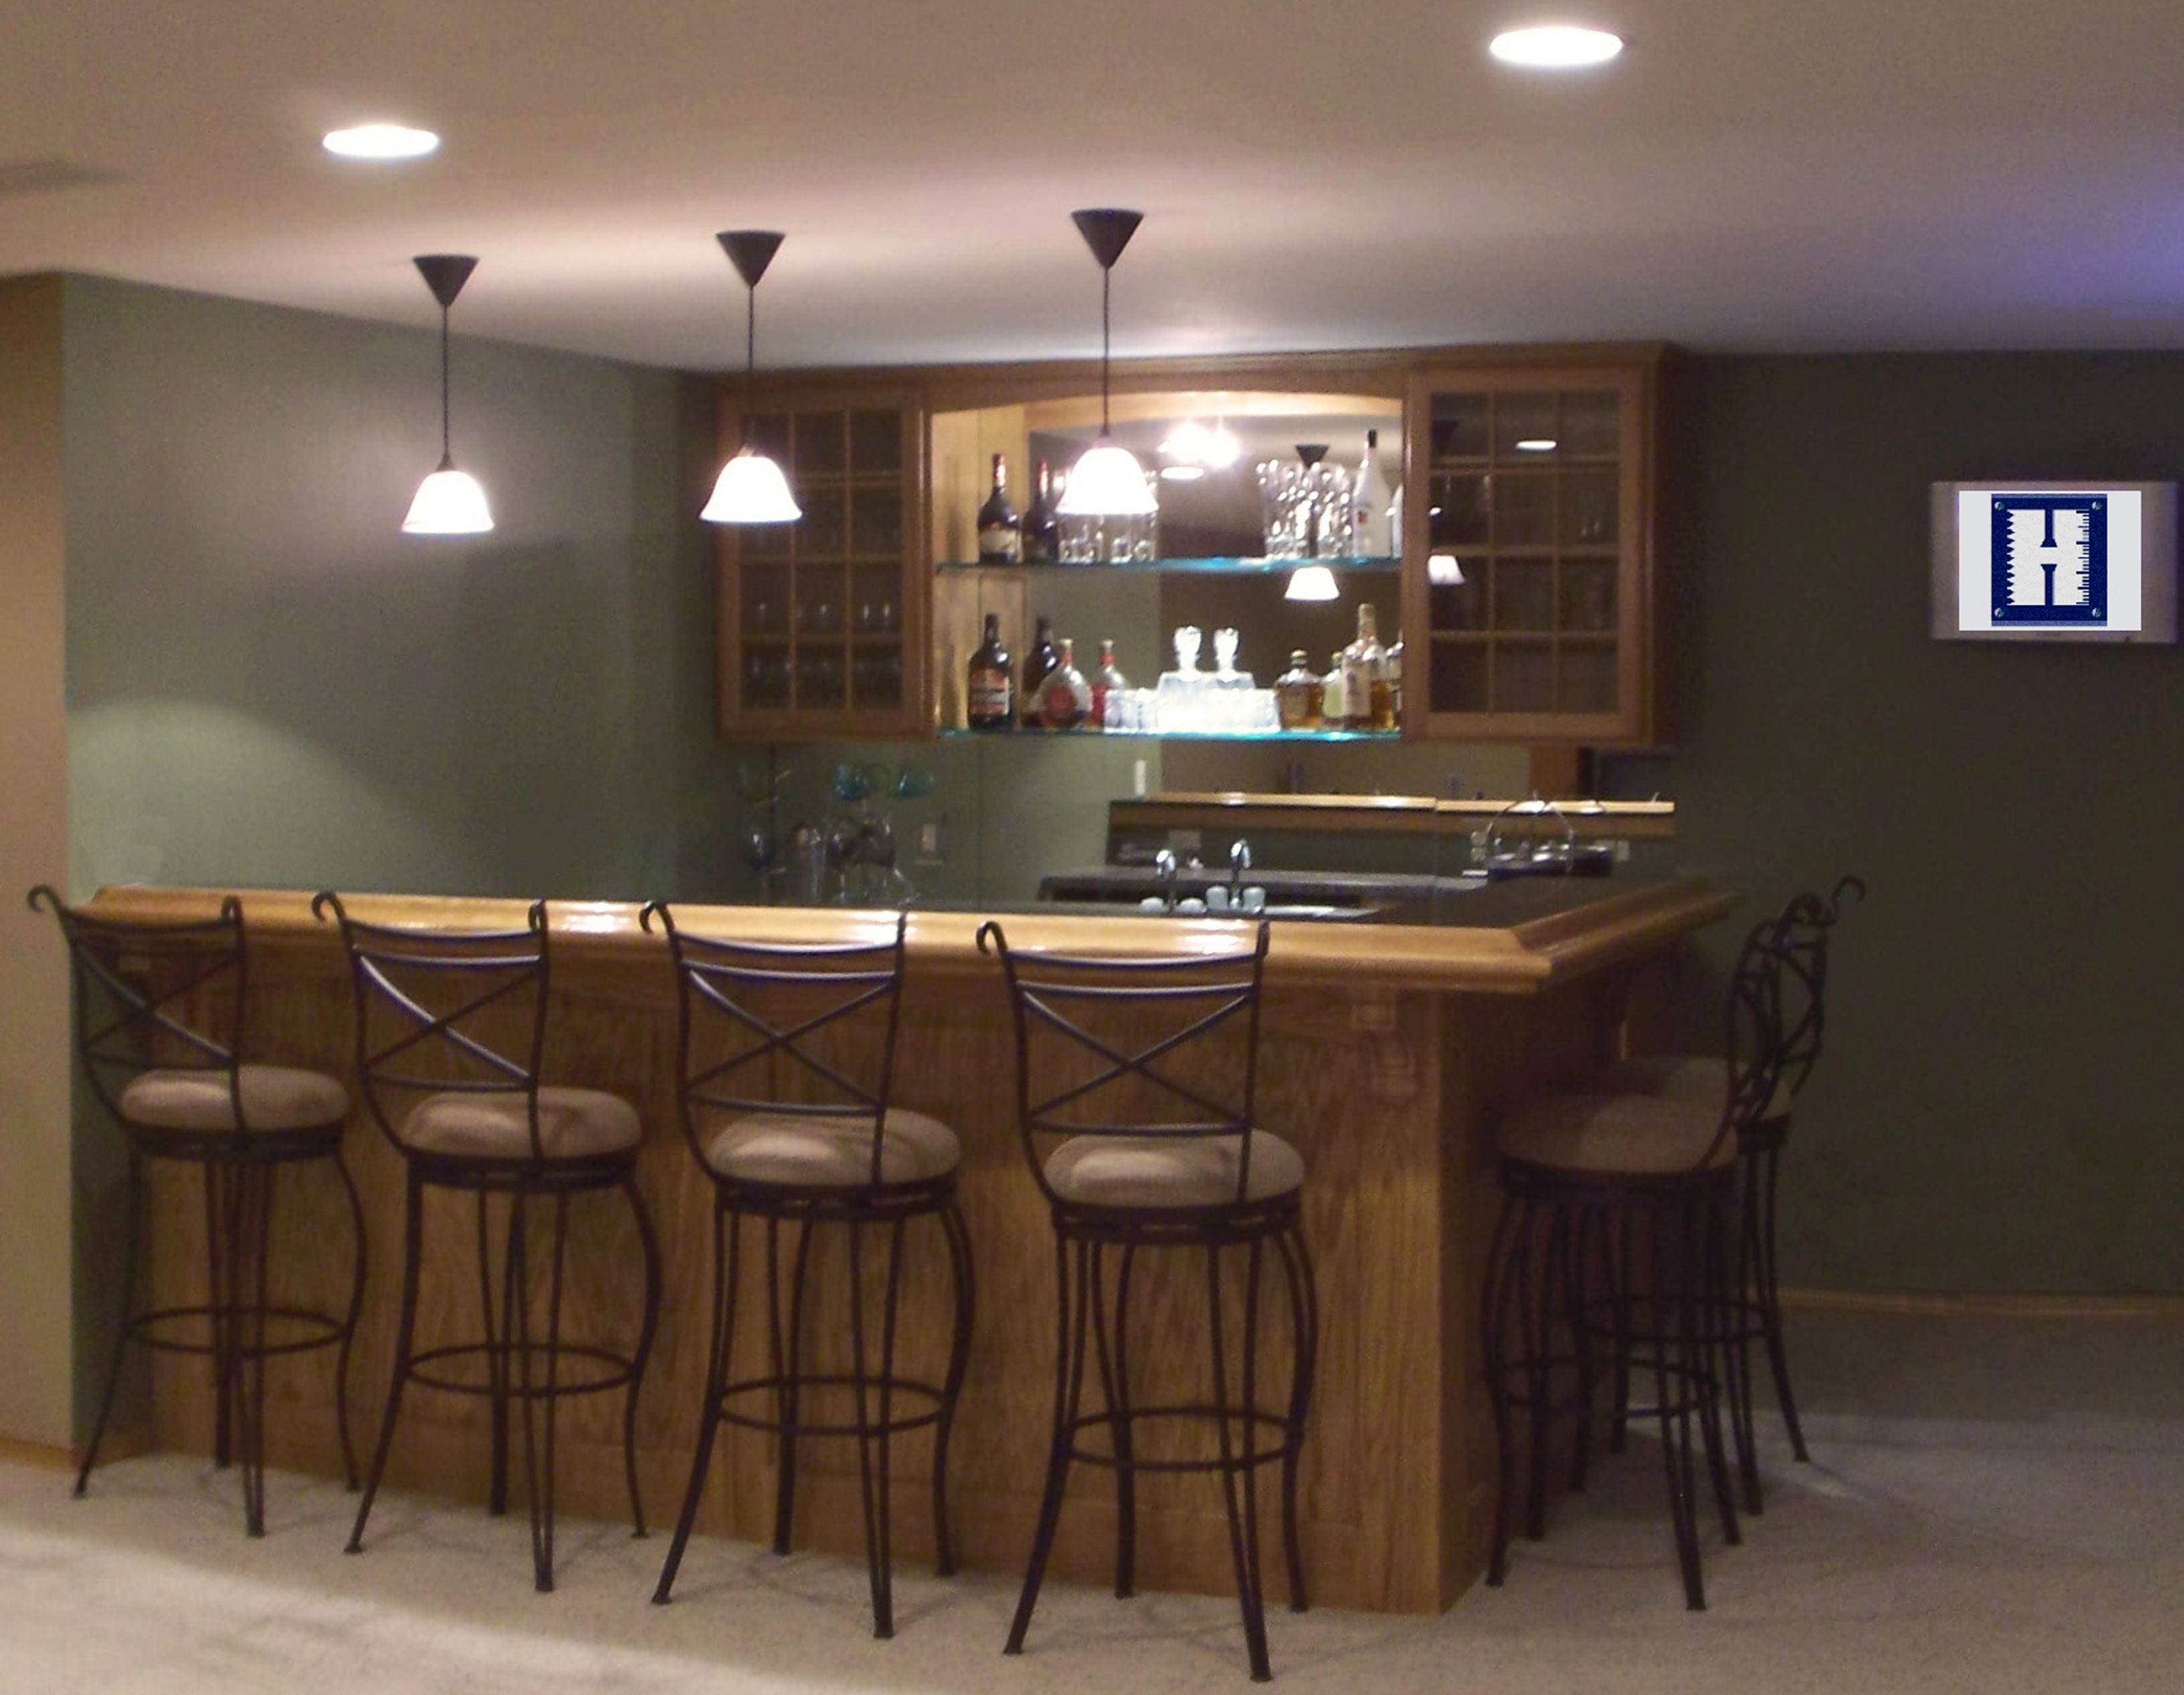 Small Basement Bar Ideas   More Home Bar Pictures Here: Http://homebar